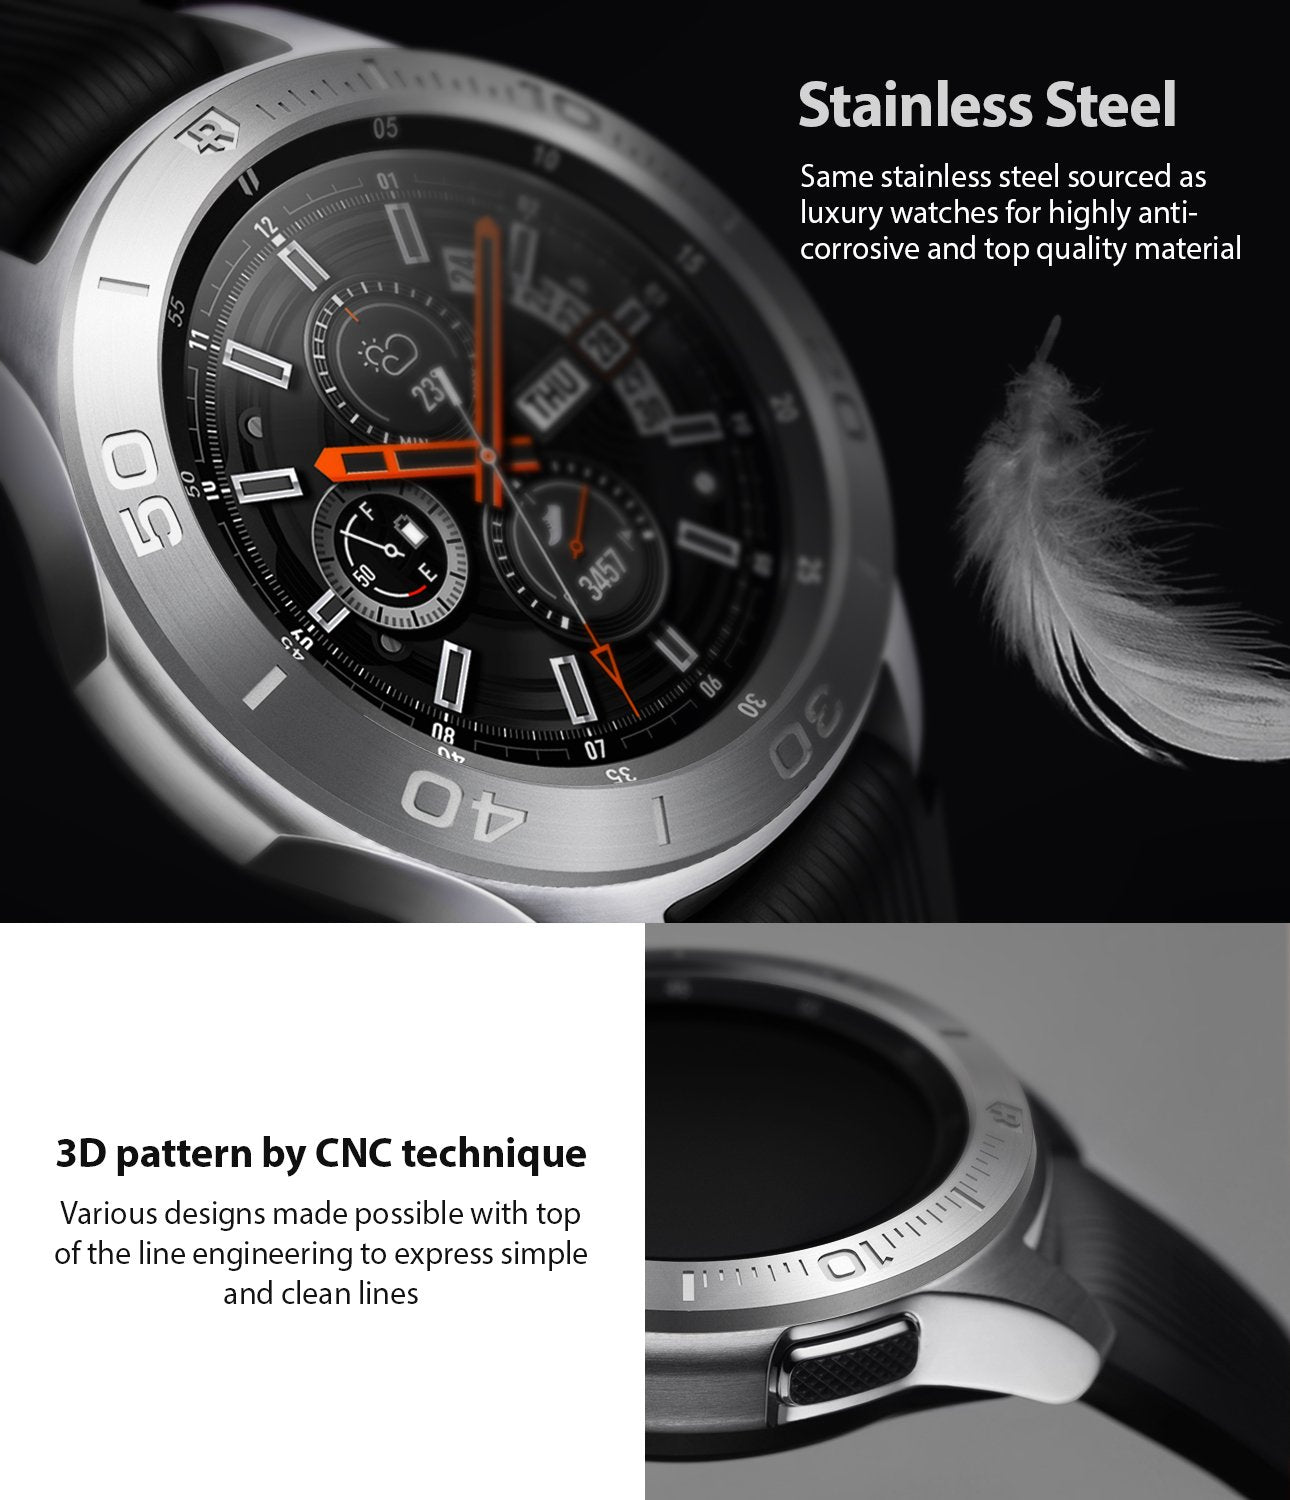 ringke bezel styling for galaxy watch 46mm made with high quality silver stainless silver 3d pattern engraved with cnc technology